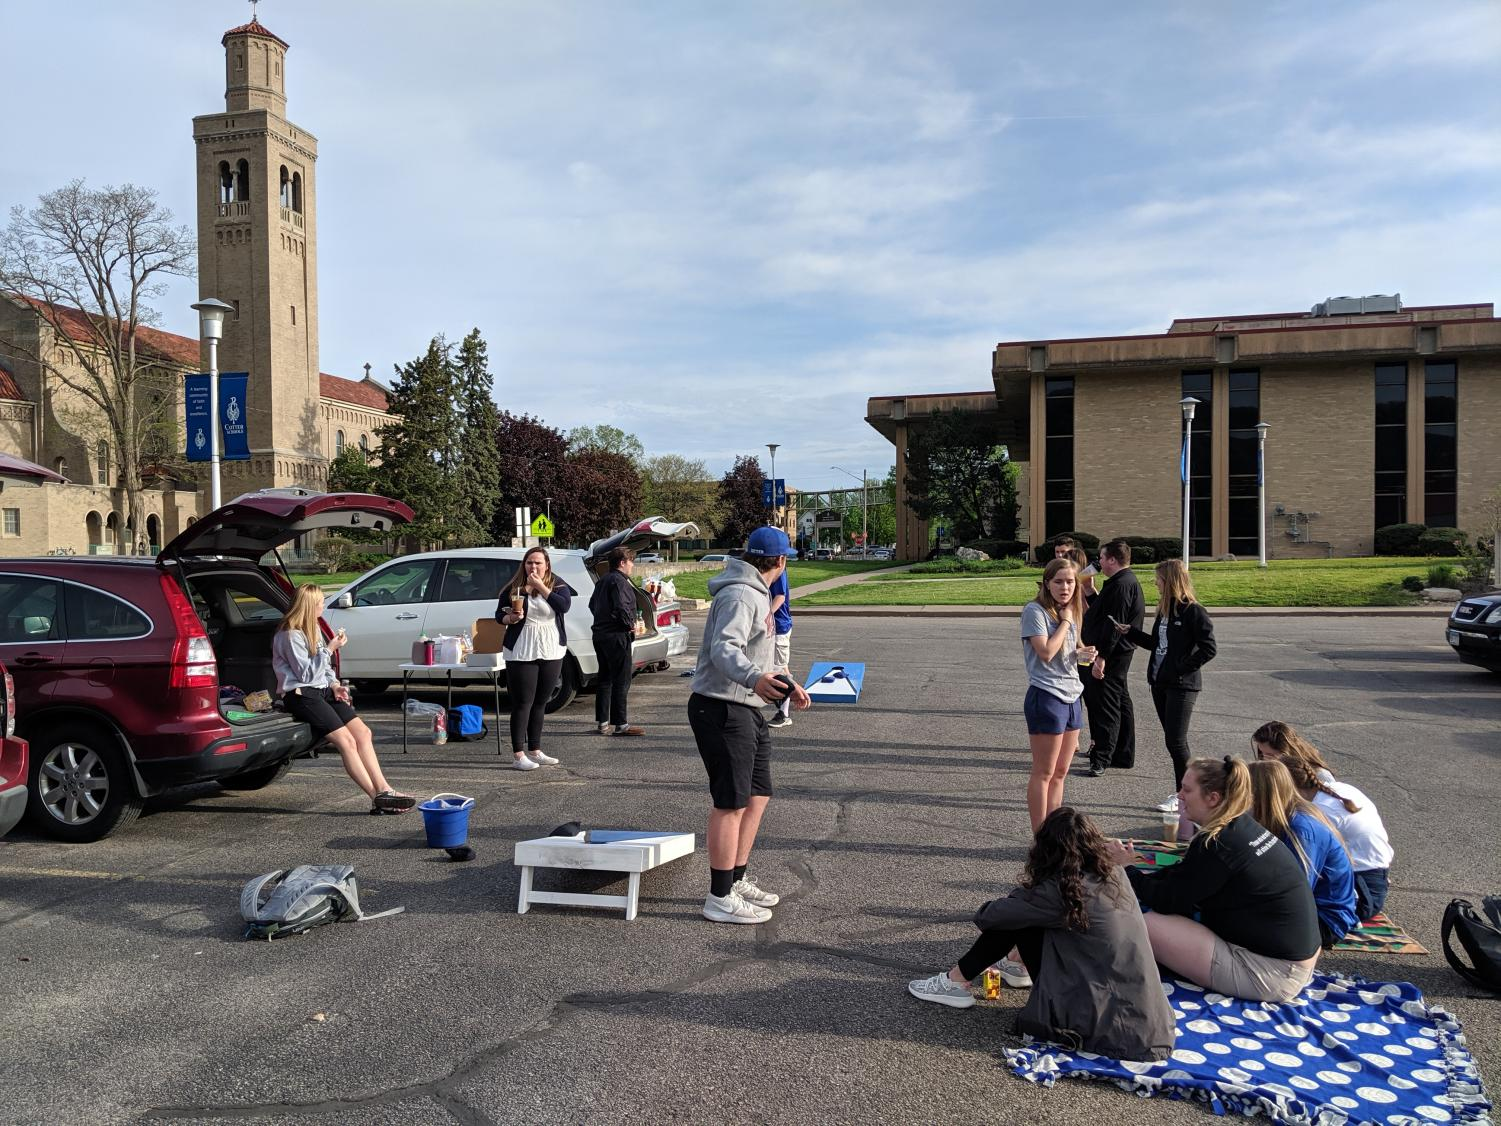 The 2019 senior class took advantage of the time-honored tradition of a senior prank. Students blocked off the John Nett parking lot where only seniors could participate in the fun festivities!